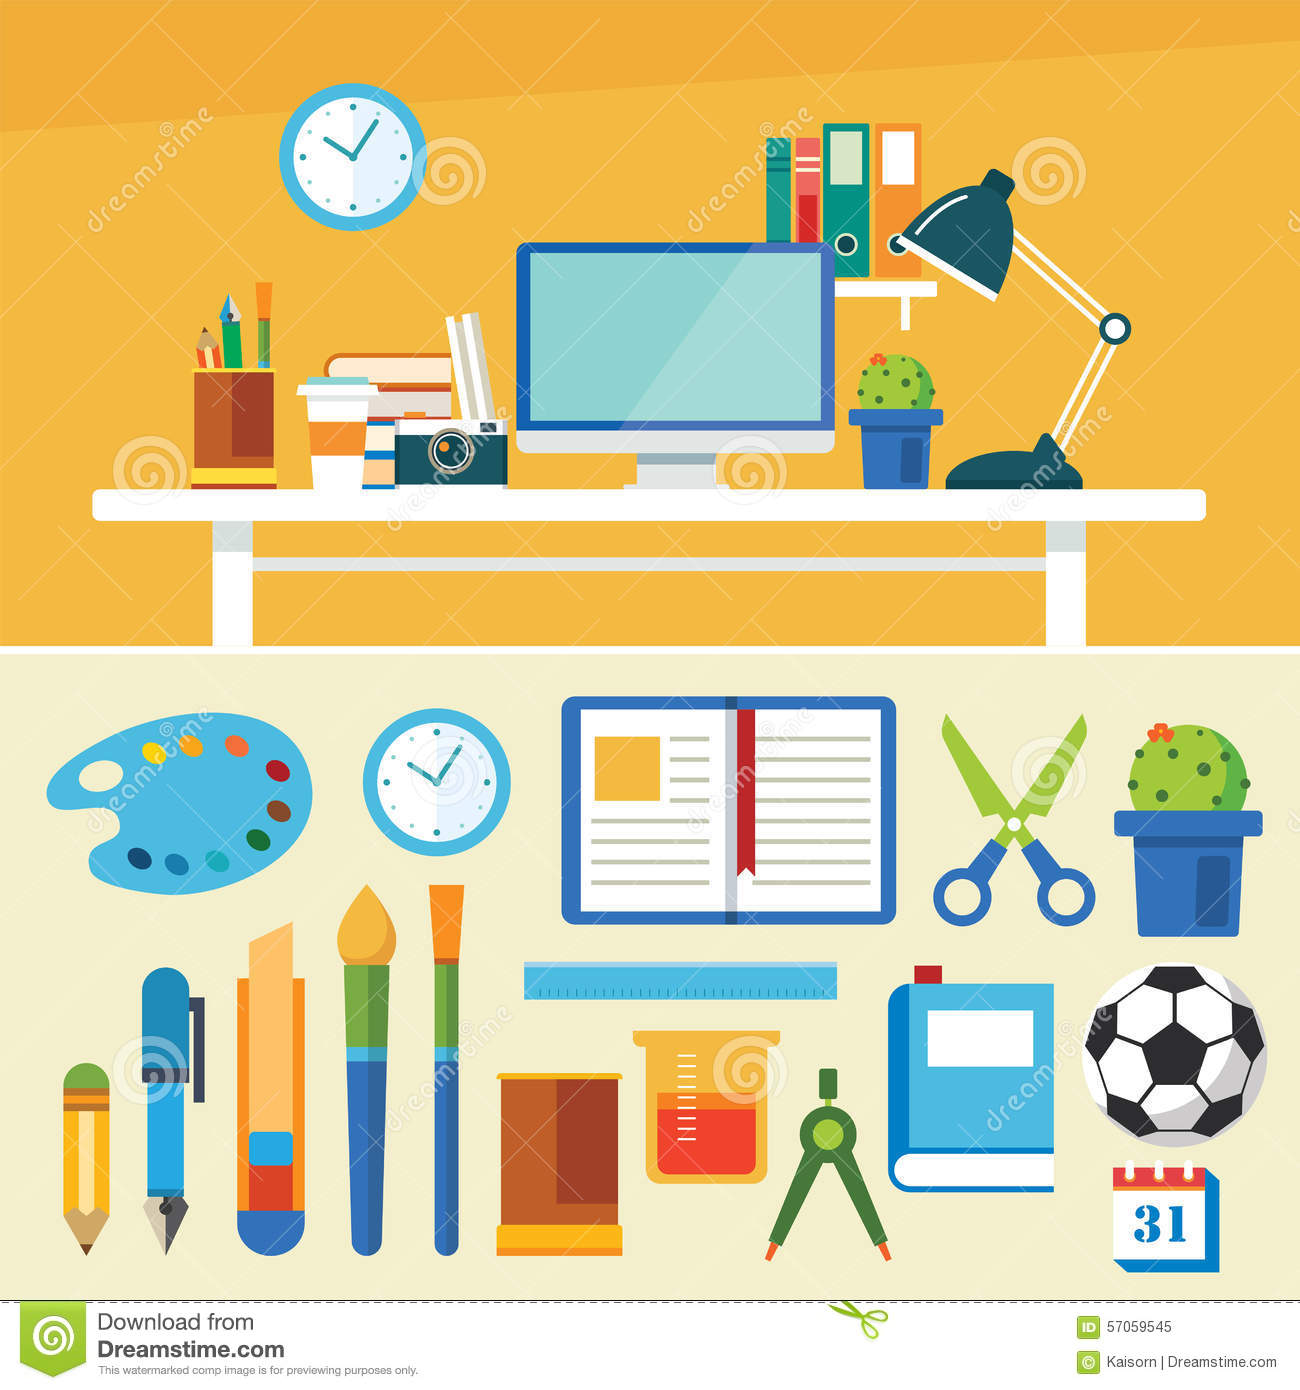 education-equipment-banner-flat-design-template-vector-57059545.jpg